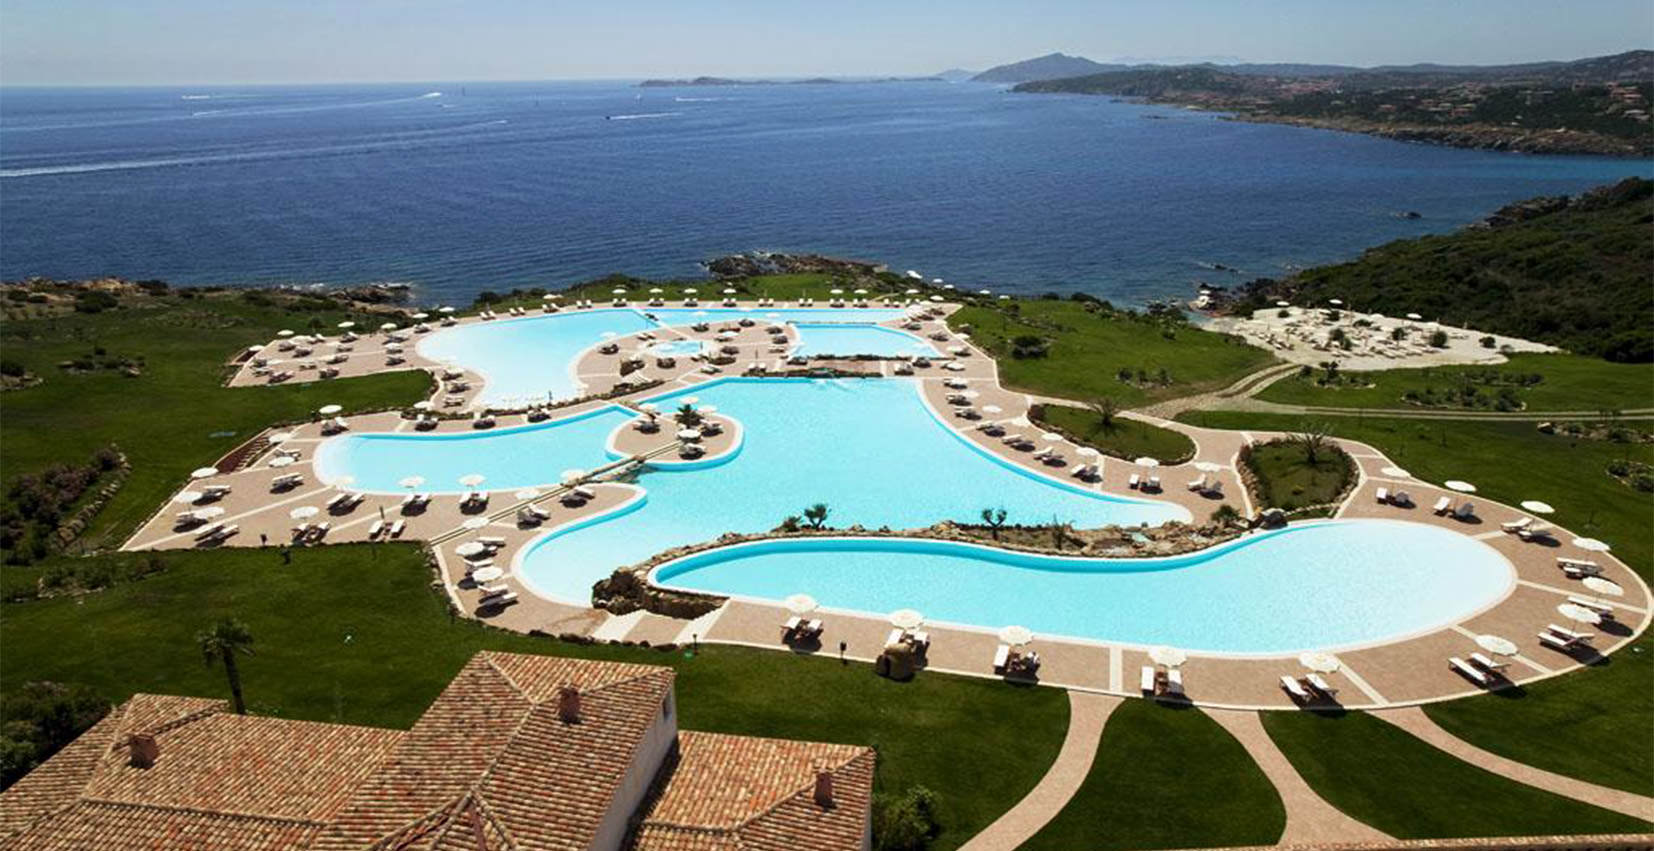 Iti Hotels: Emerald Coast - Sardinia